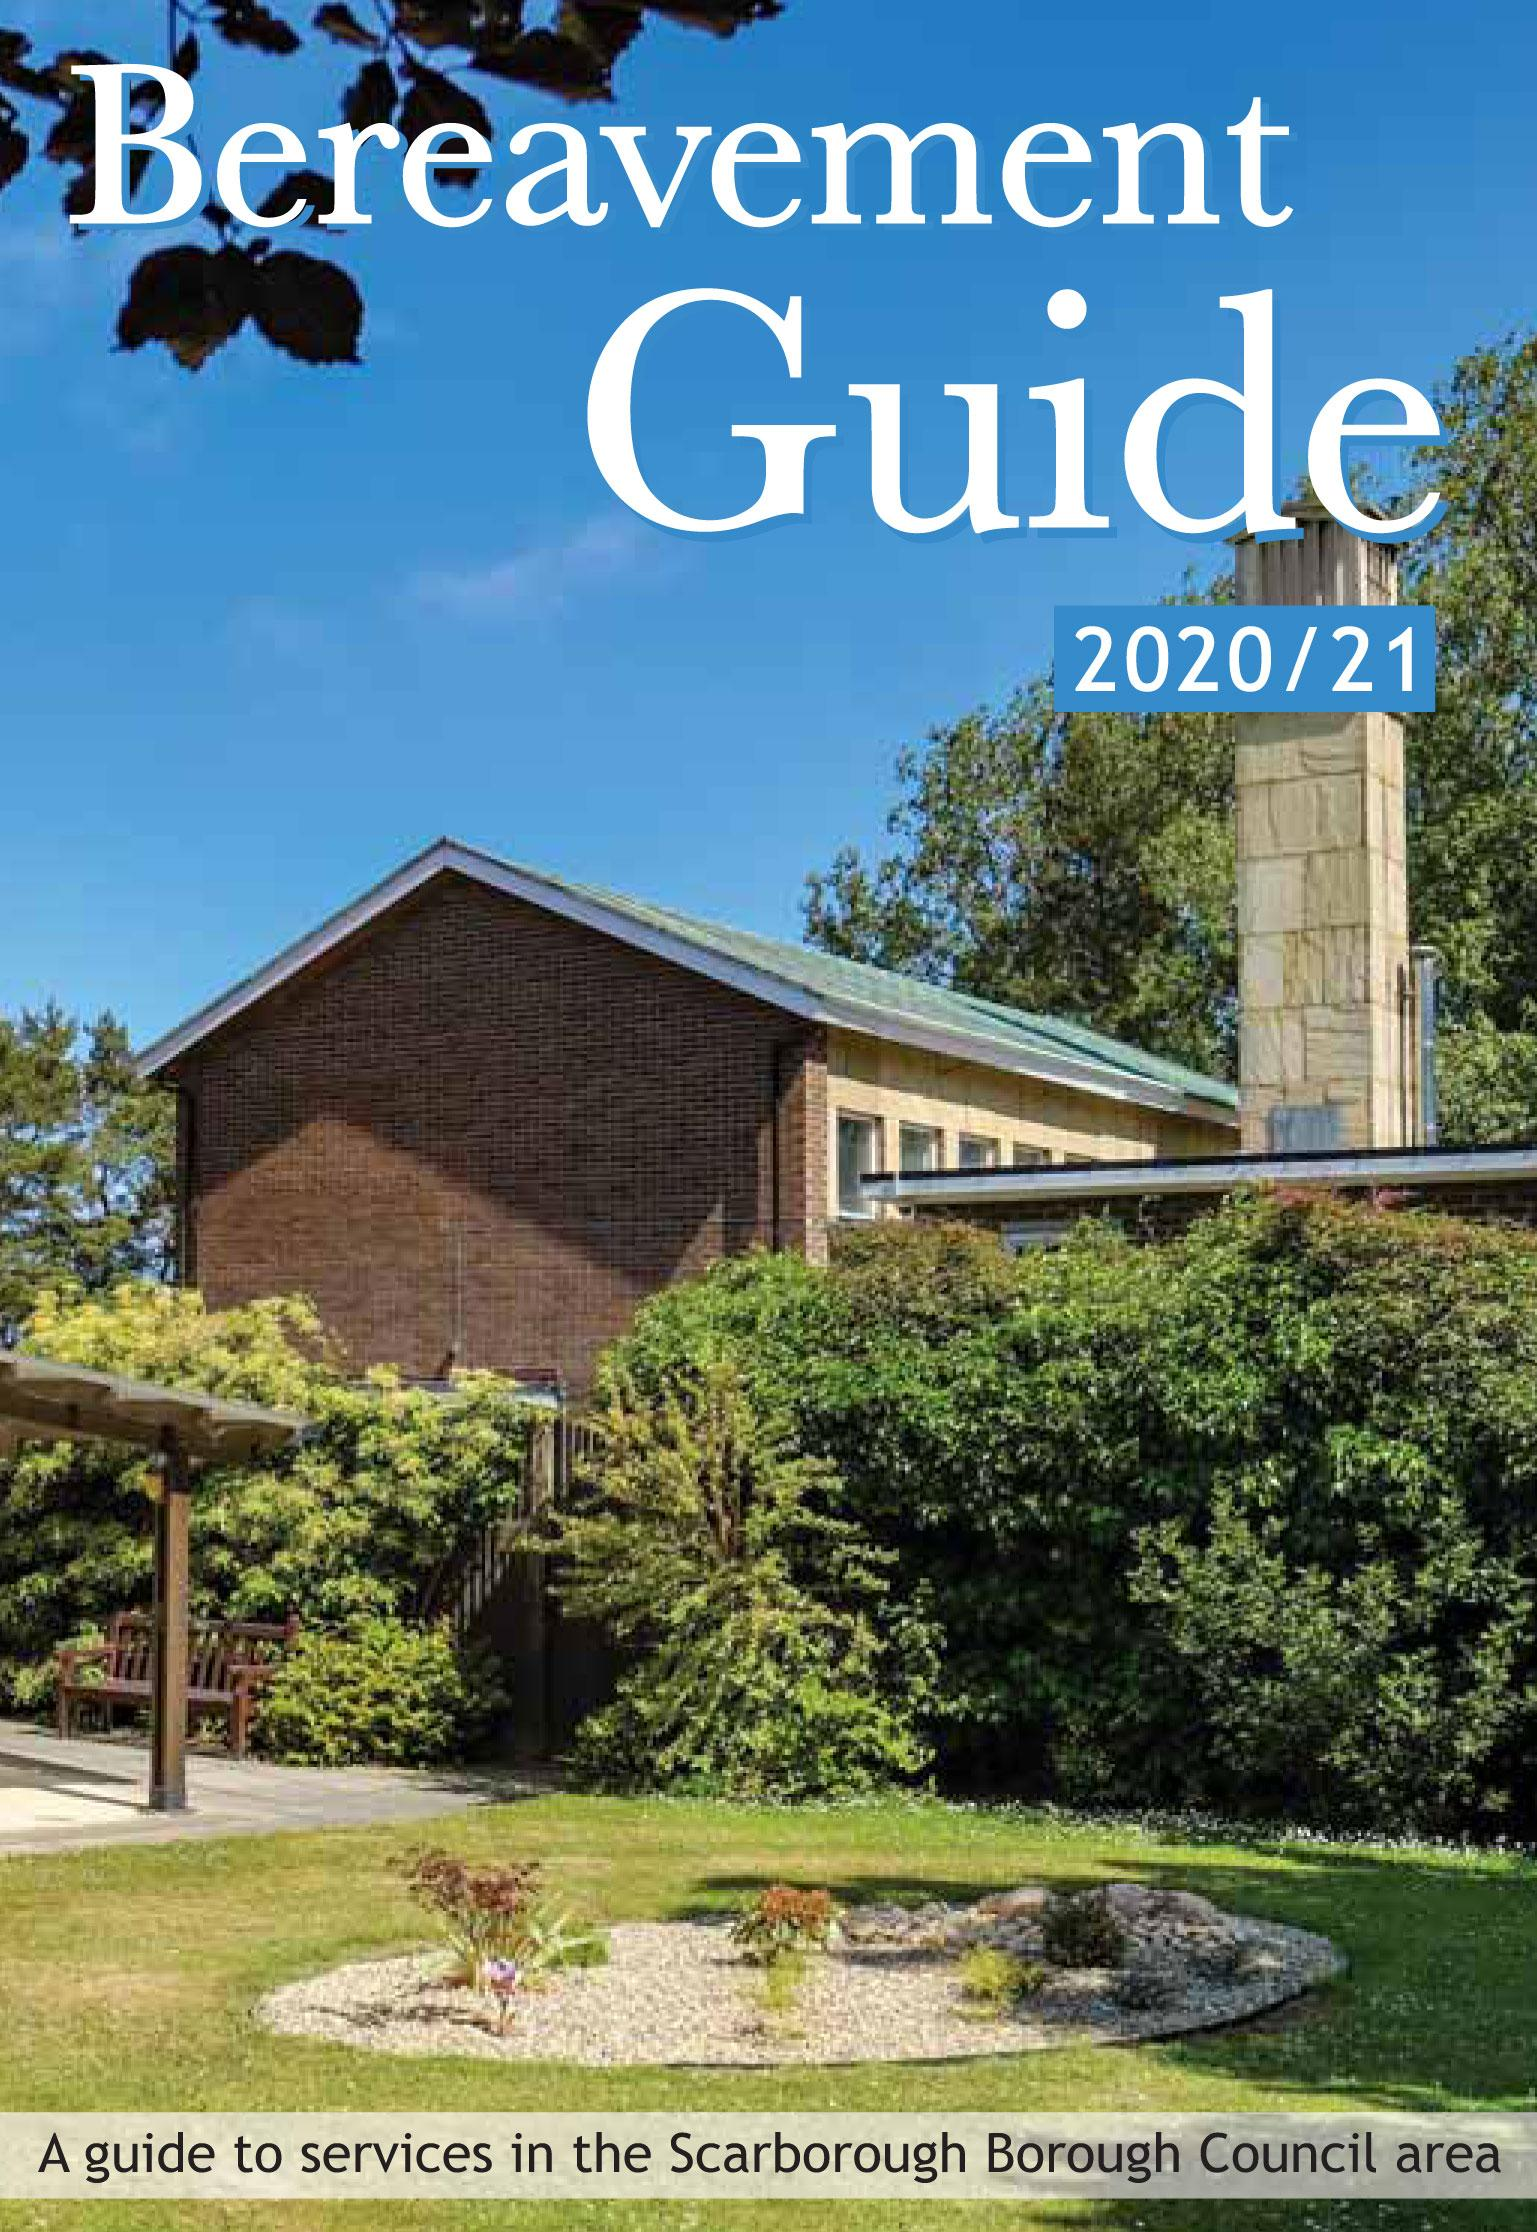 Bereavement Guide front cover 2021